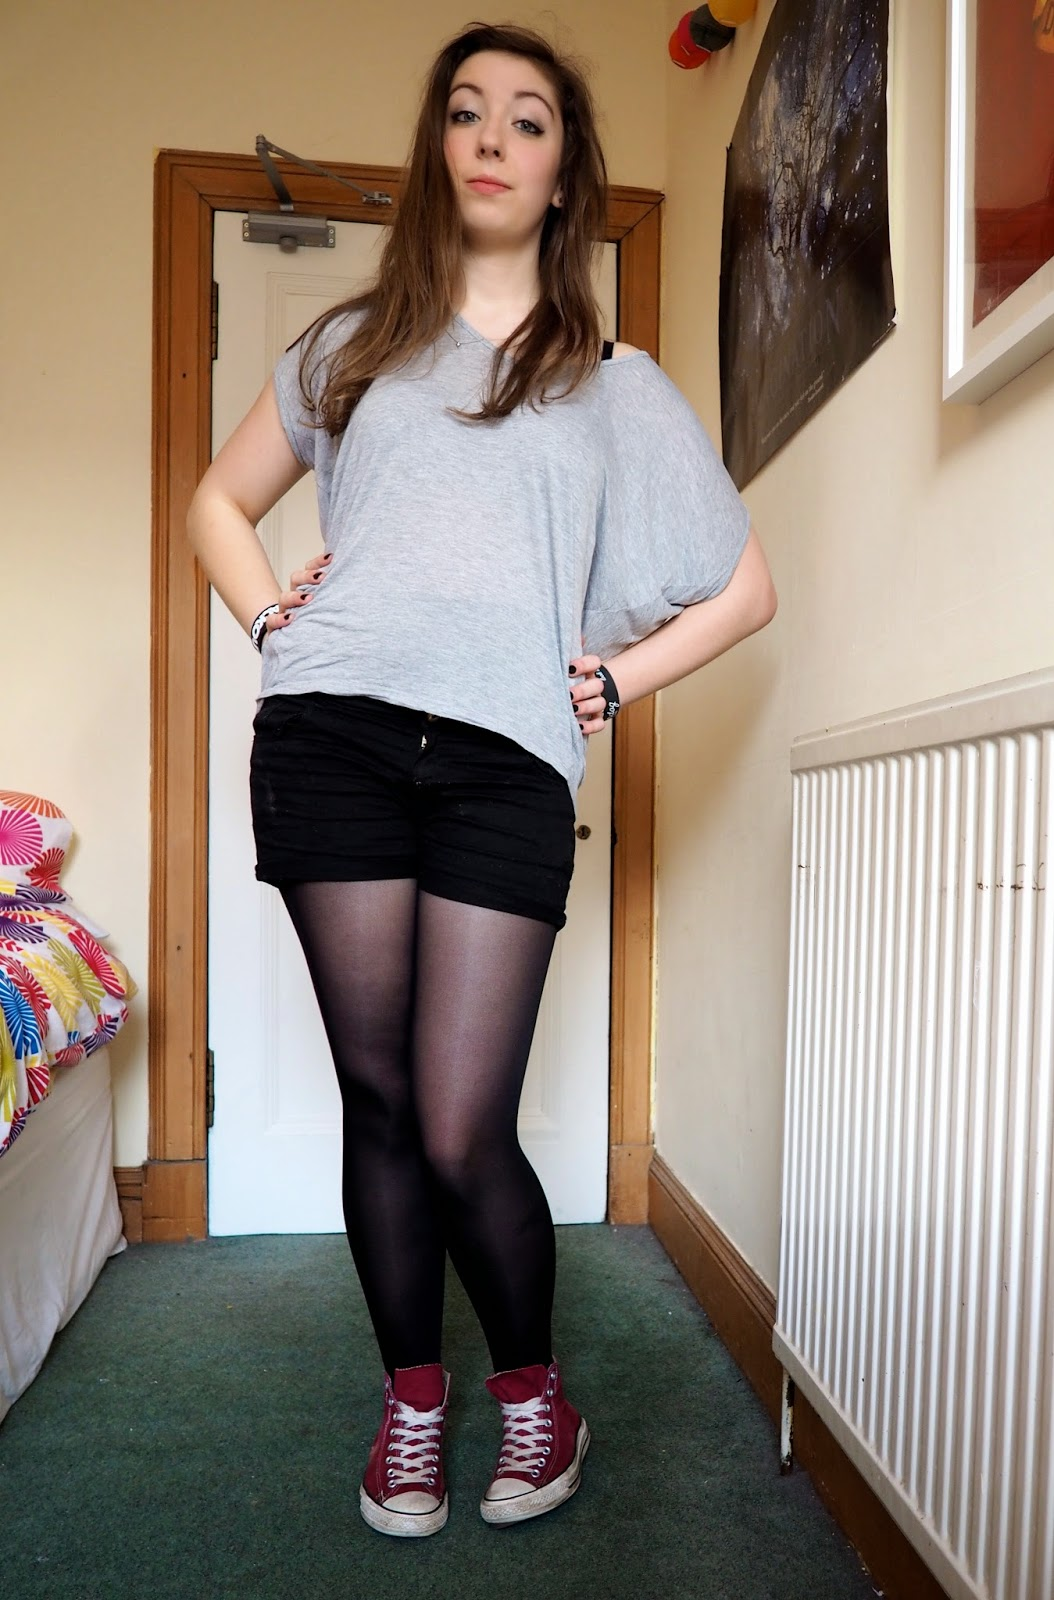 Gig Wear outfit - loose grey top, black denim shorts and tights, red high top converse